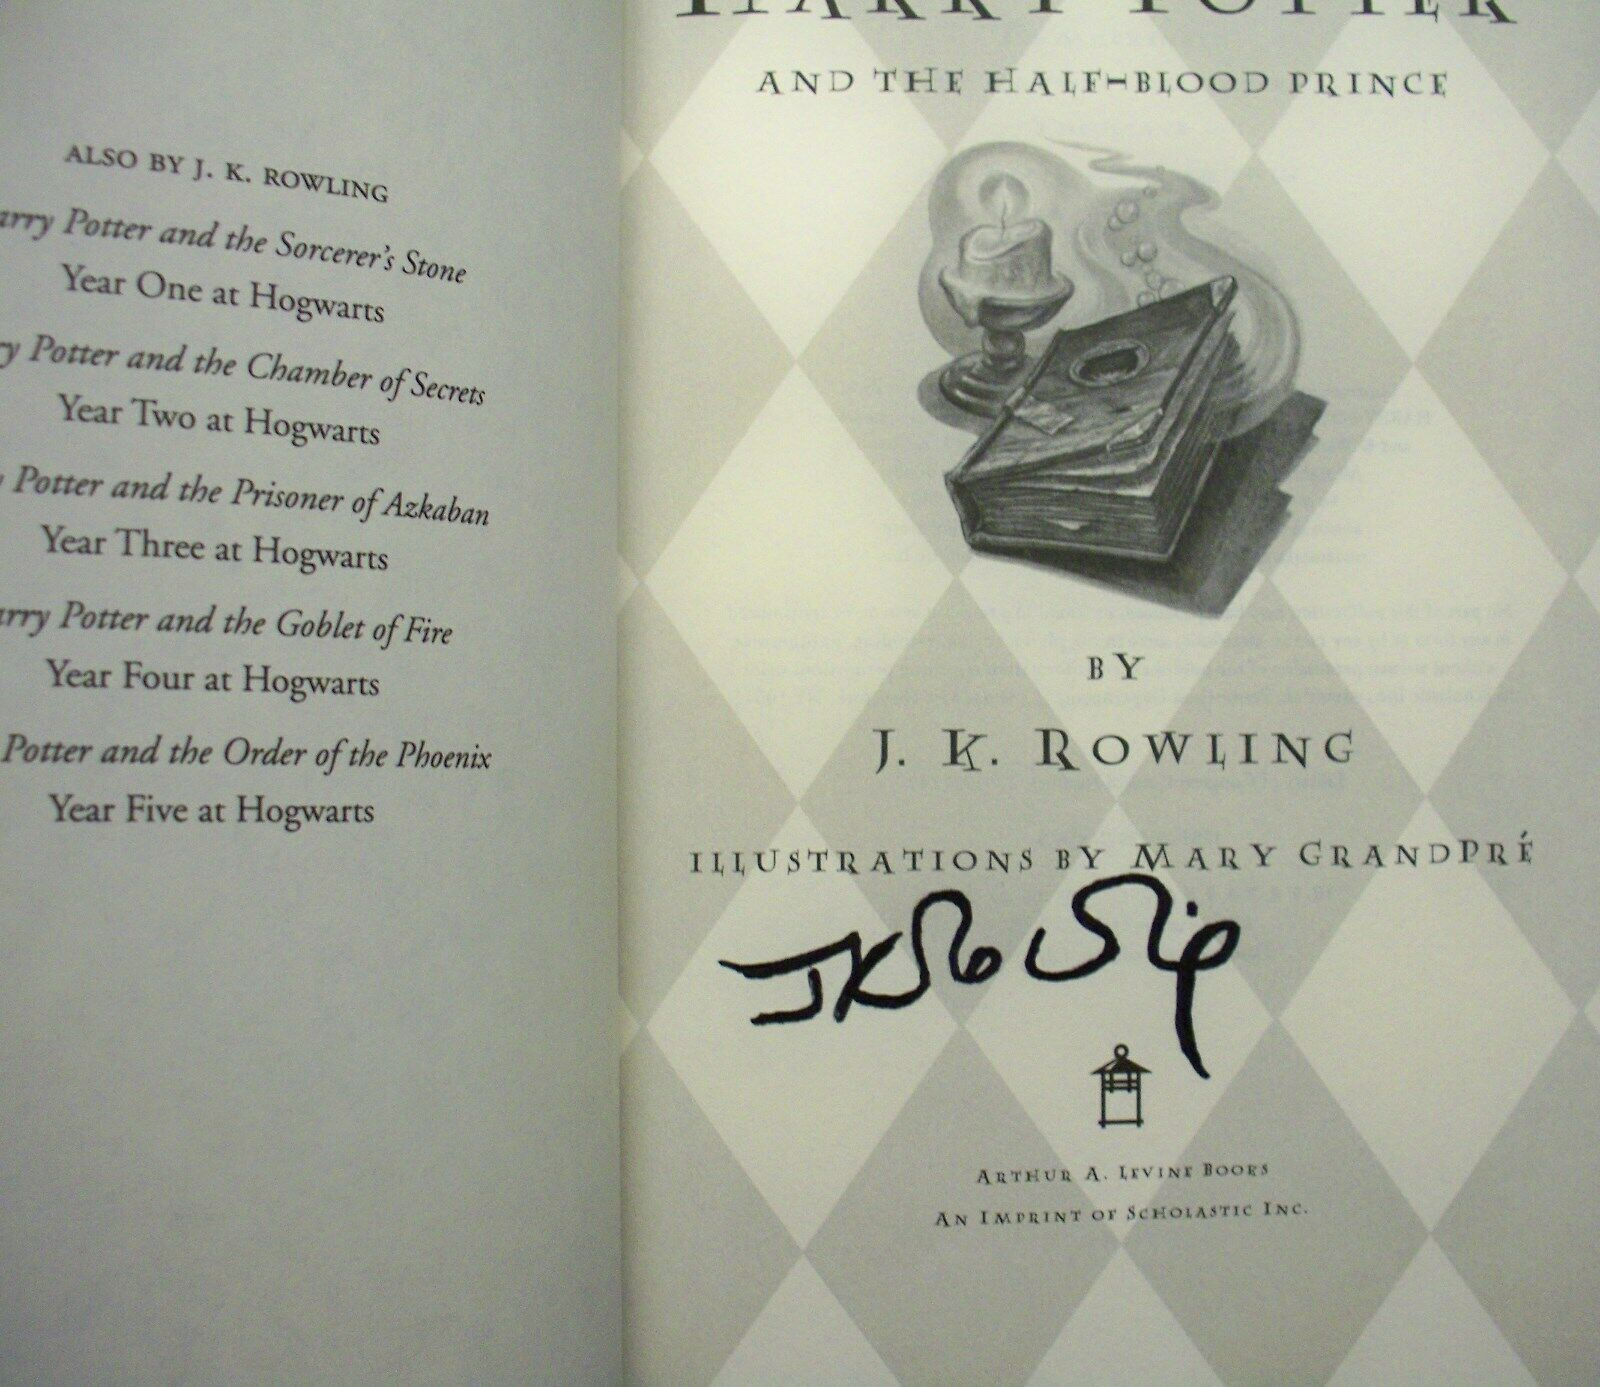 JK Rowling Signature Forgery found inside a a US Edition of Harry Potter and the Half-Blood Prince; found on eBay.